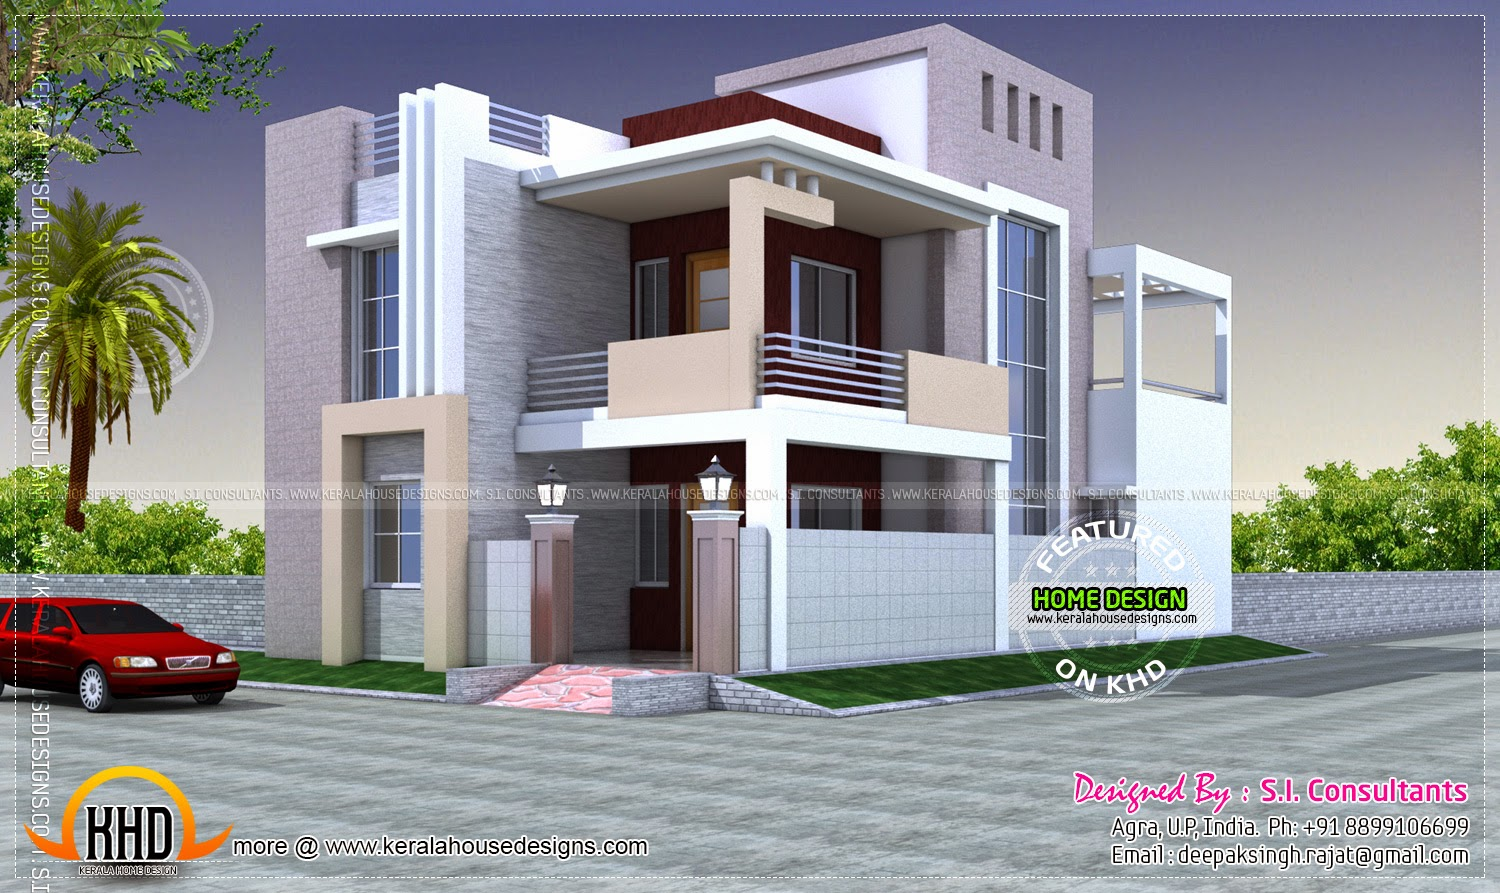 House exterior elevation modern style kerala home design for Contemporary home designs india